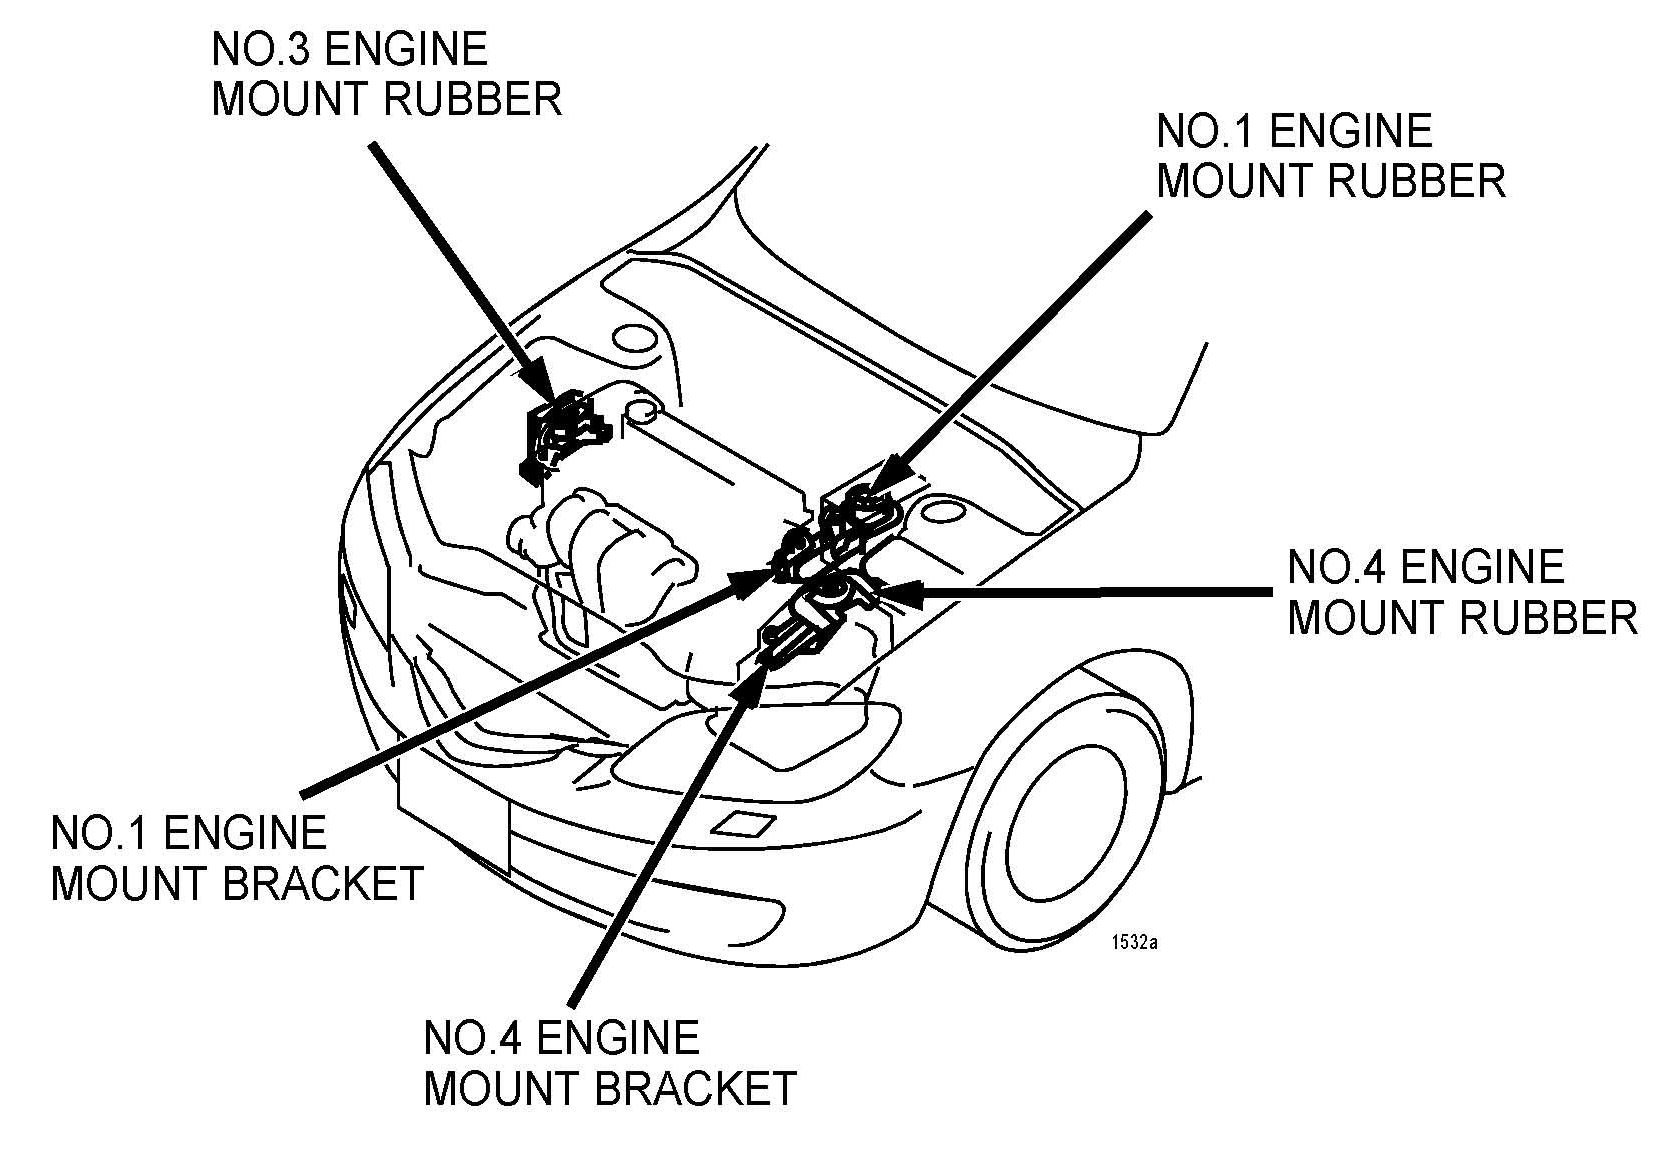 2007 Mazdaspeed 3 Engine Diagram Worksheet And Wiring Images Gallery